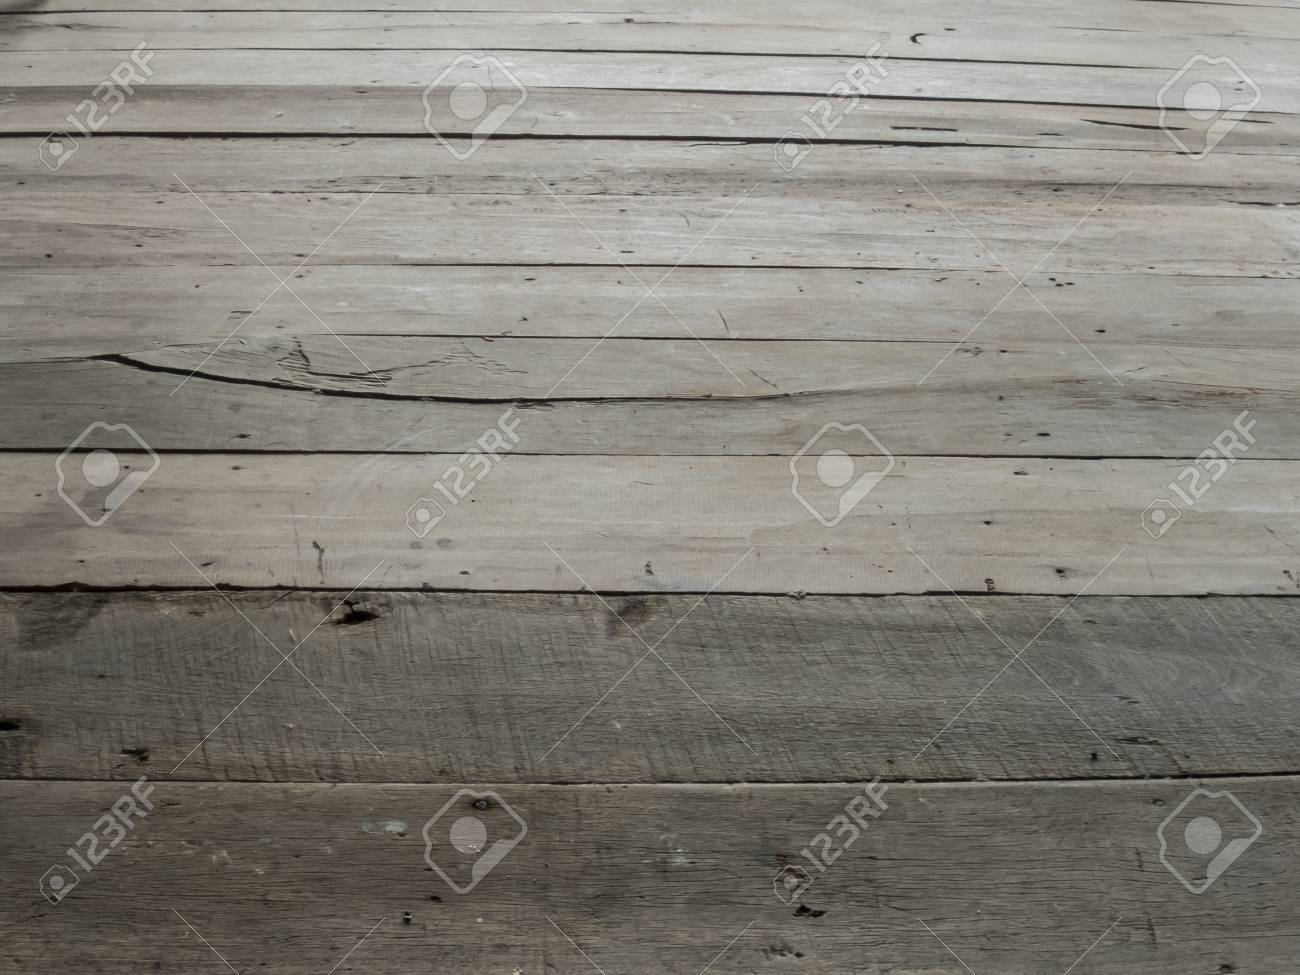 real wood floor stock photo, picture and royalty free image. image